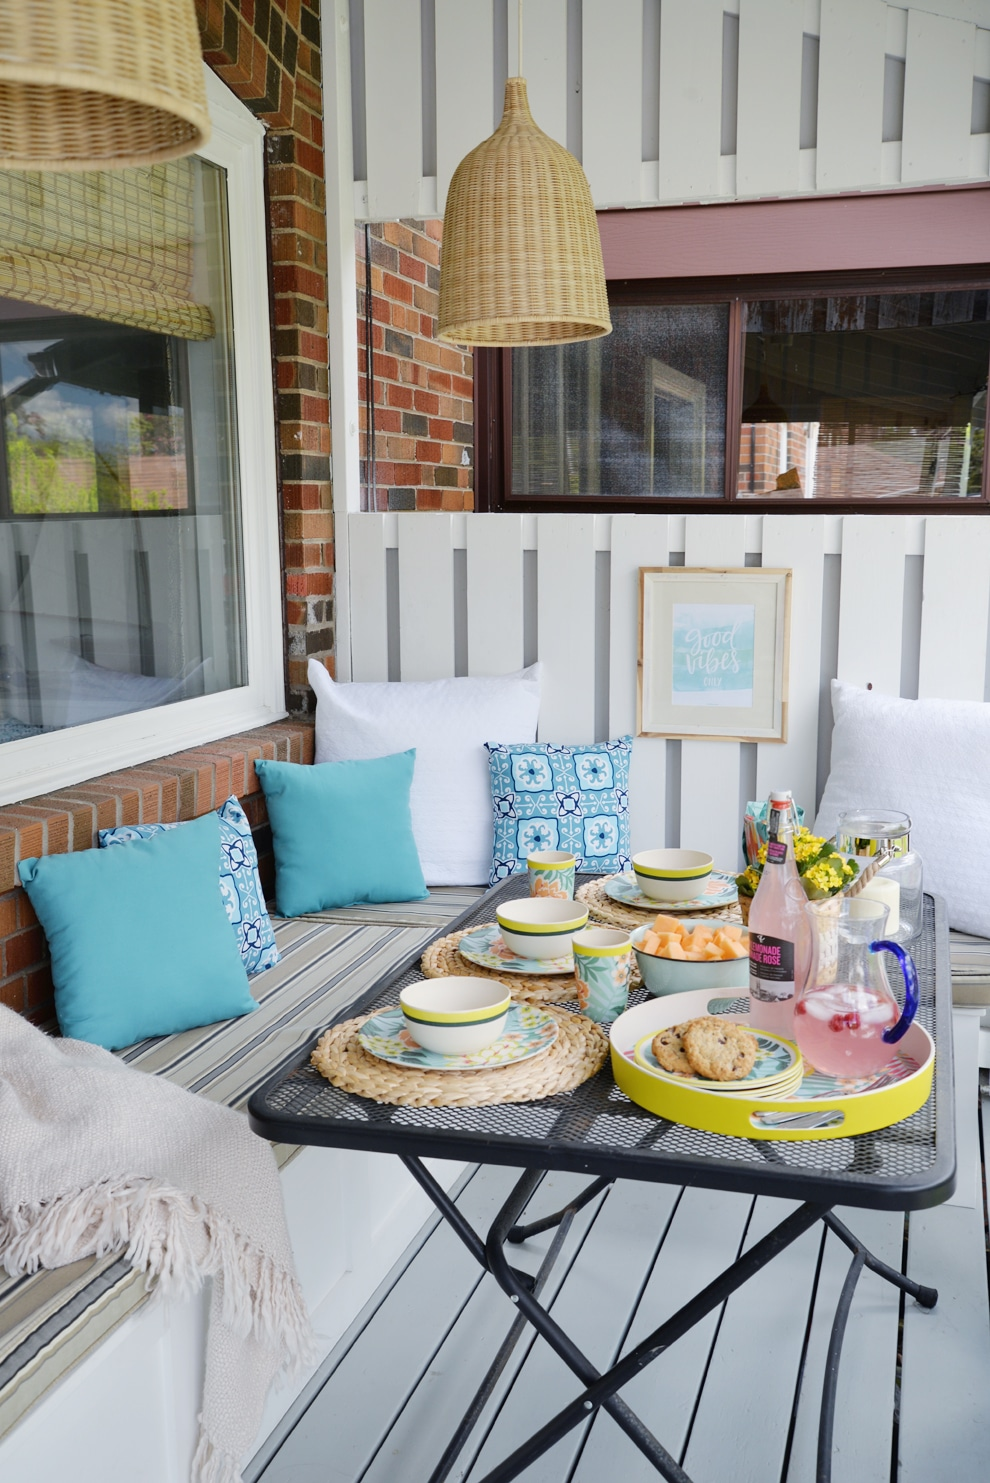 12 Stylish Porch, Deck and Patio Decor Ideas - Setting for ... on Backyard Patio Decorating Ideas id=62854